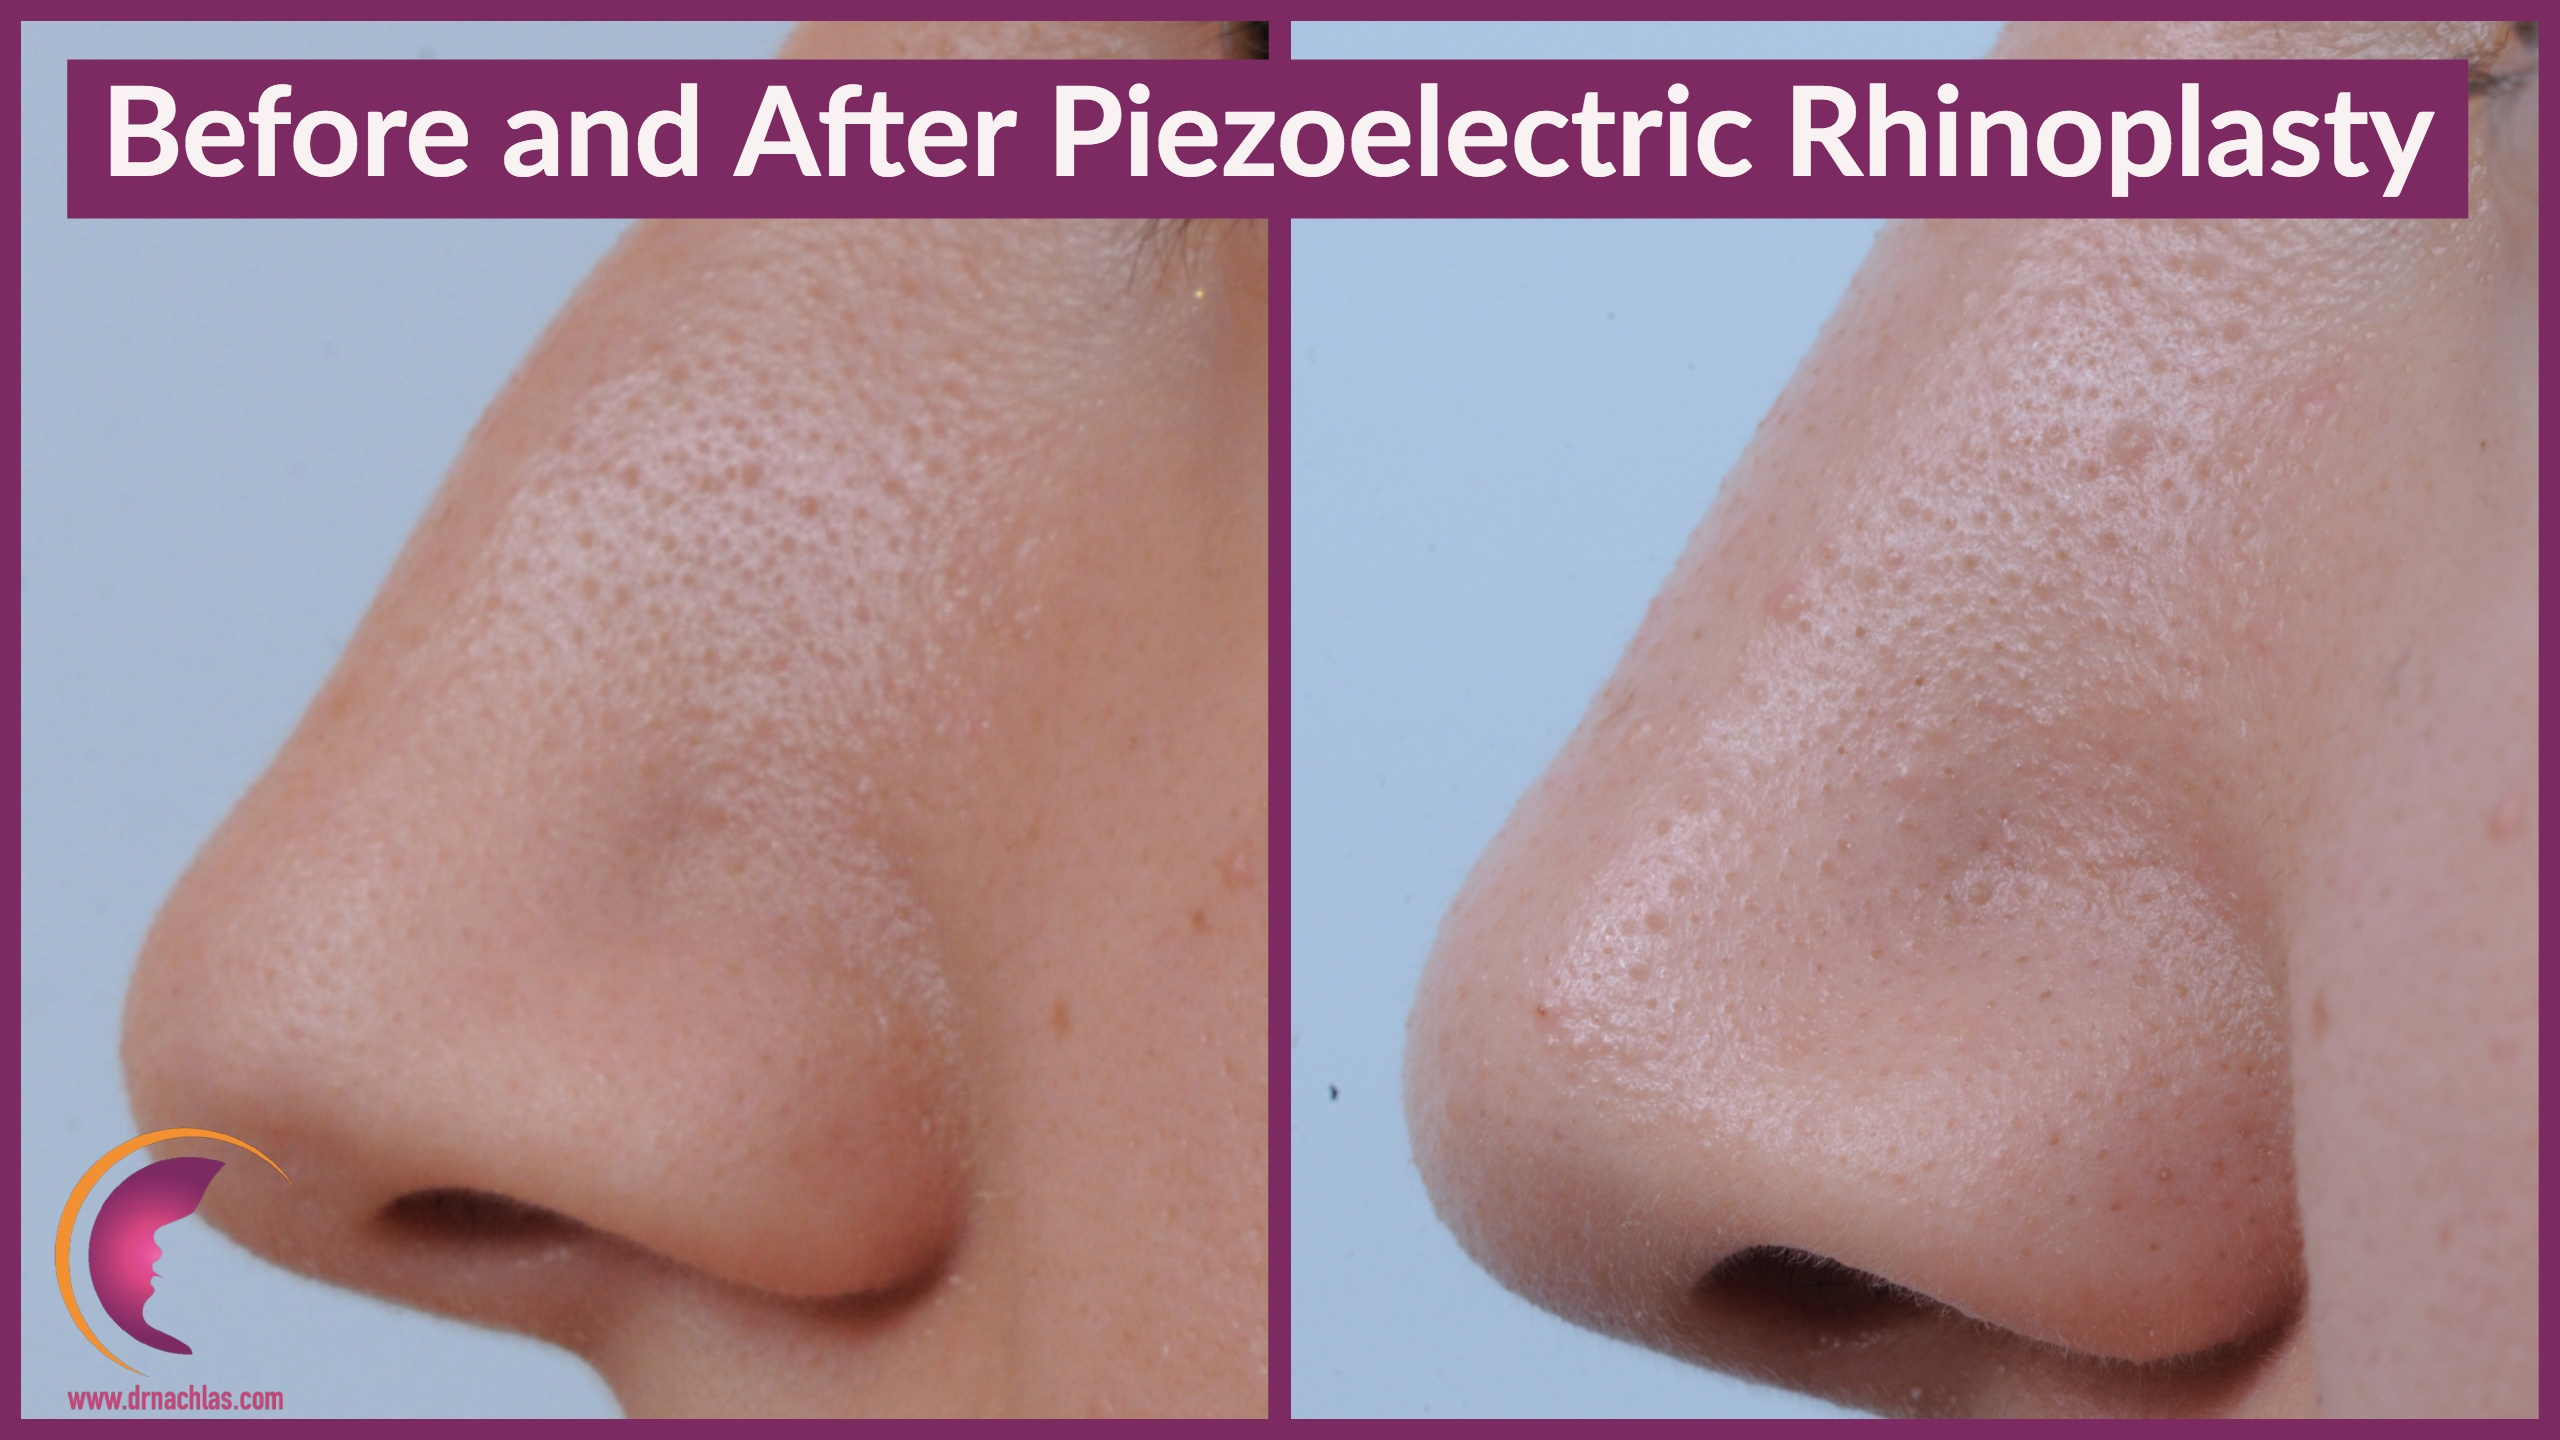 patient images before and after piezoelectric rhinoplasty surgery by Dr. Nathan Nachlas